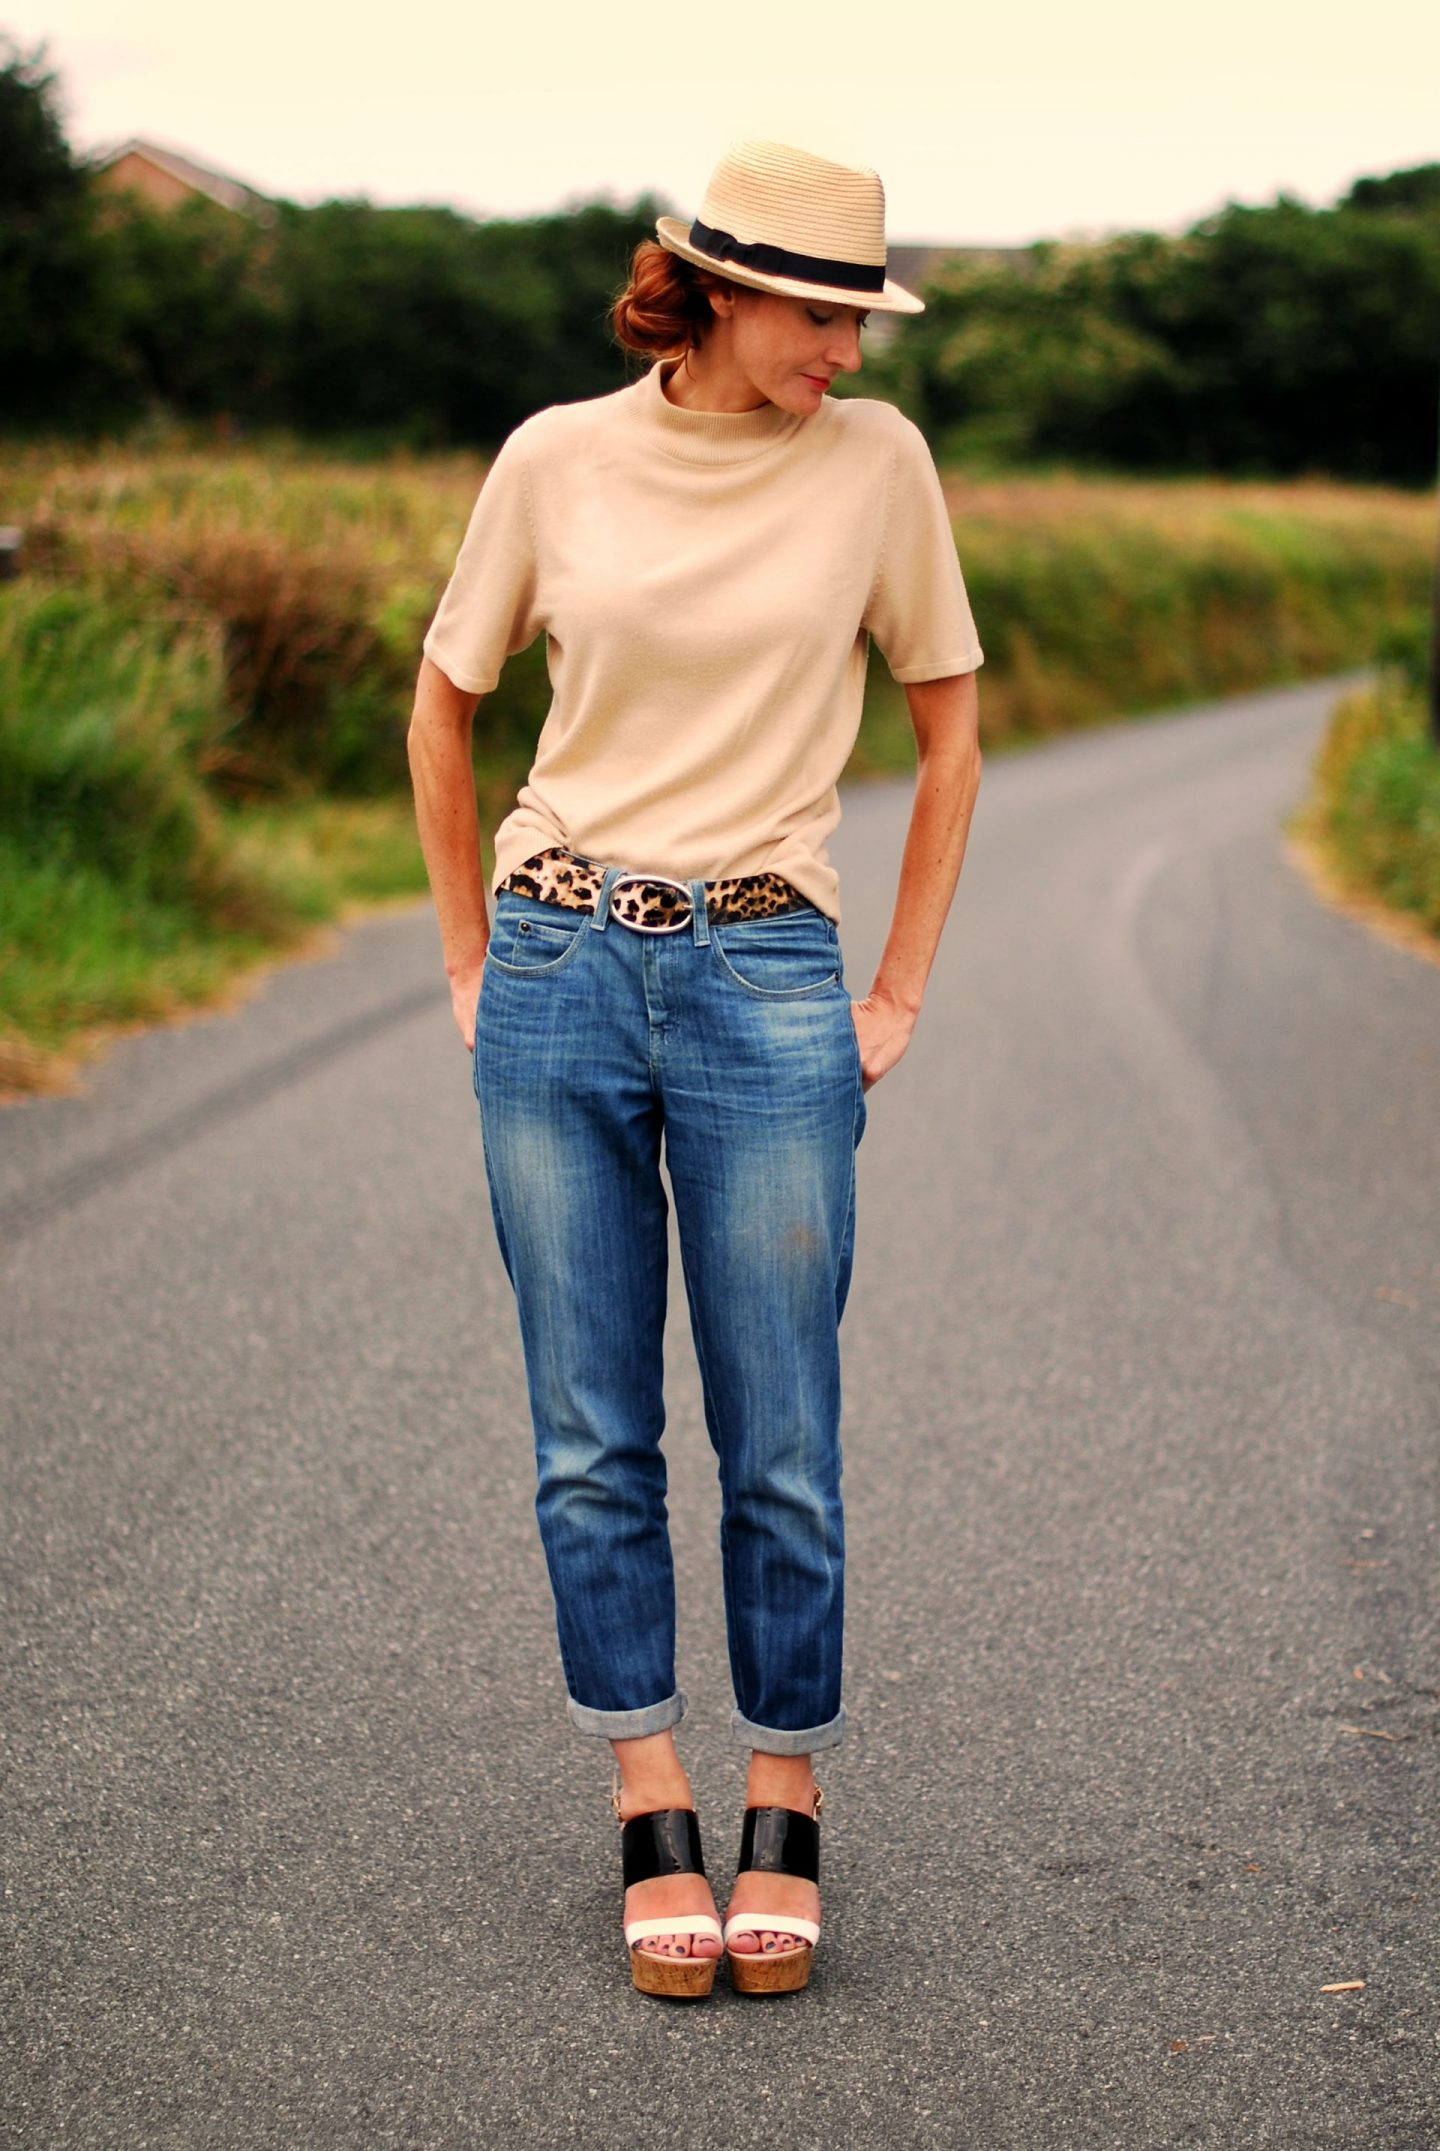 How To Dress Up Boyfriend Jeans (Yet Remain Casual)